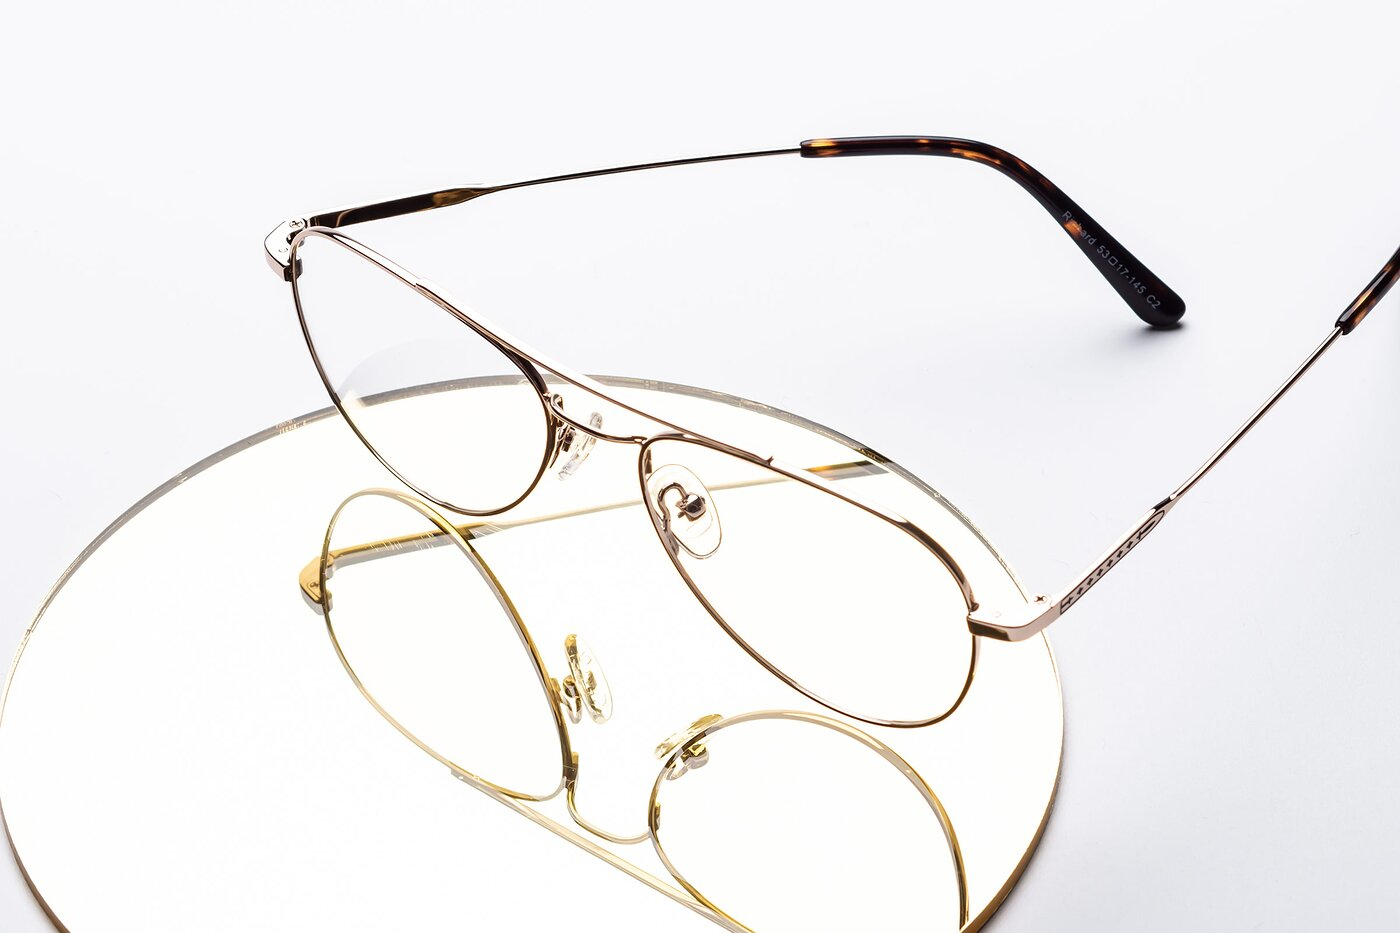 Gold Lightweight Metal Aviator Eyeglasses